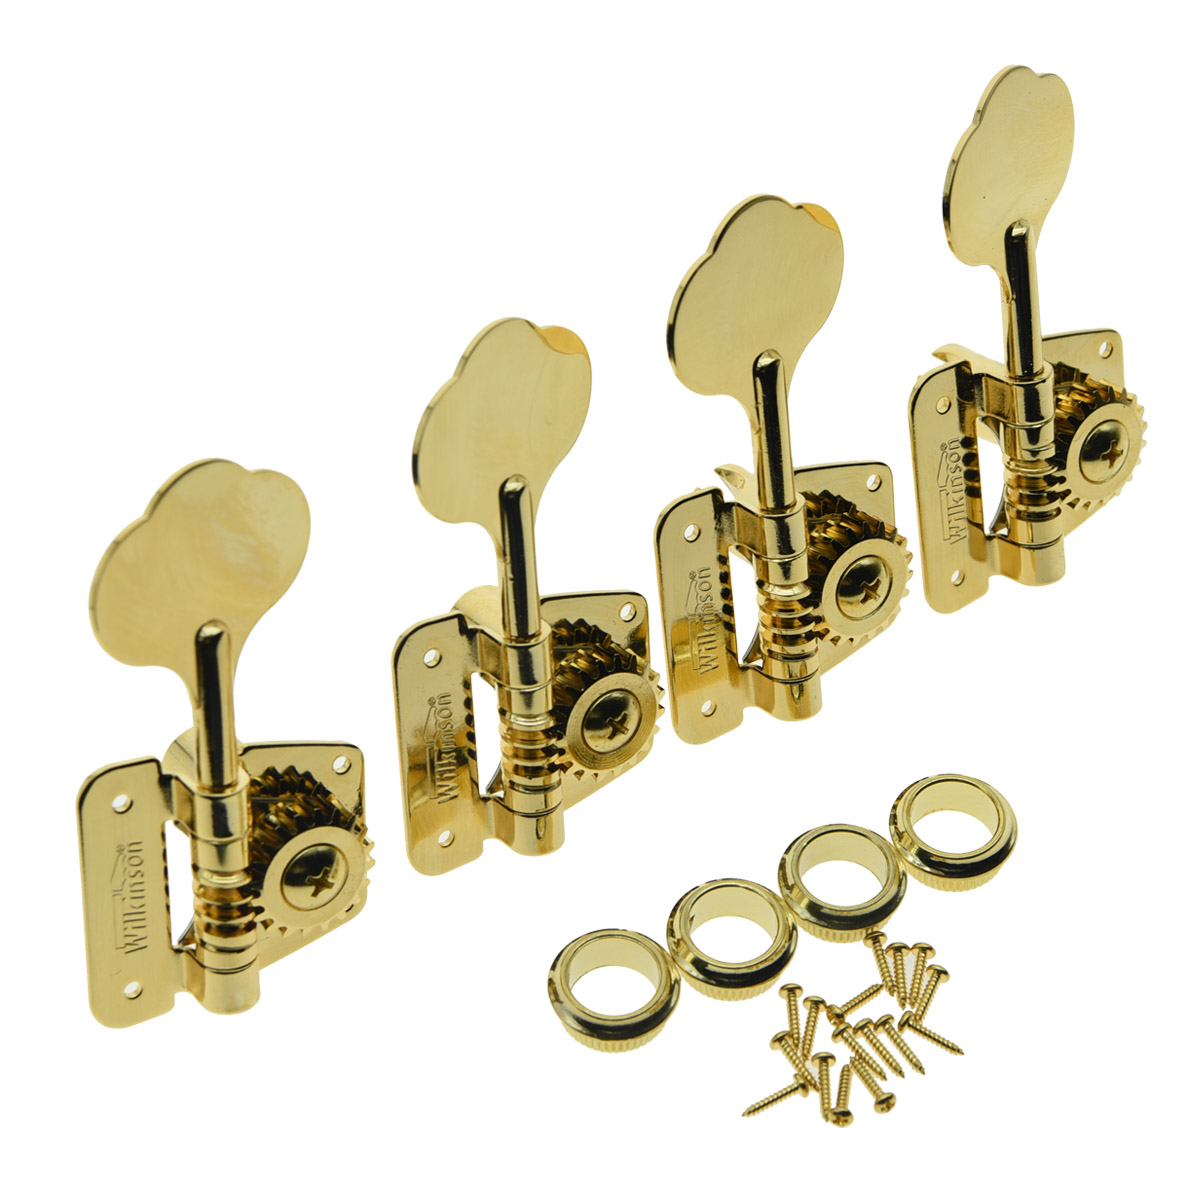 KAISH Wilkinson Gold Bass Tuners Tuning Keys for 70's Vintage J Bass Precision Bass 20cm male to male female to male and female to female jumper wire connector dupont cable for breadboard